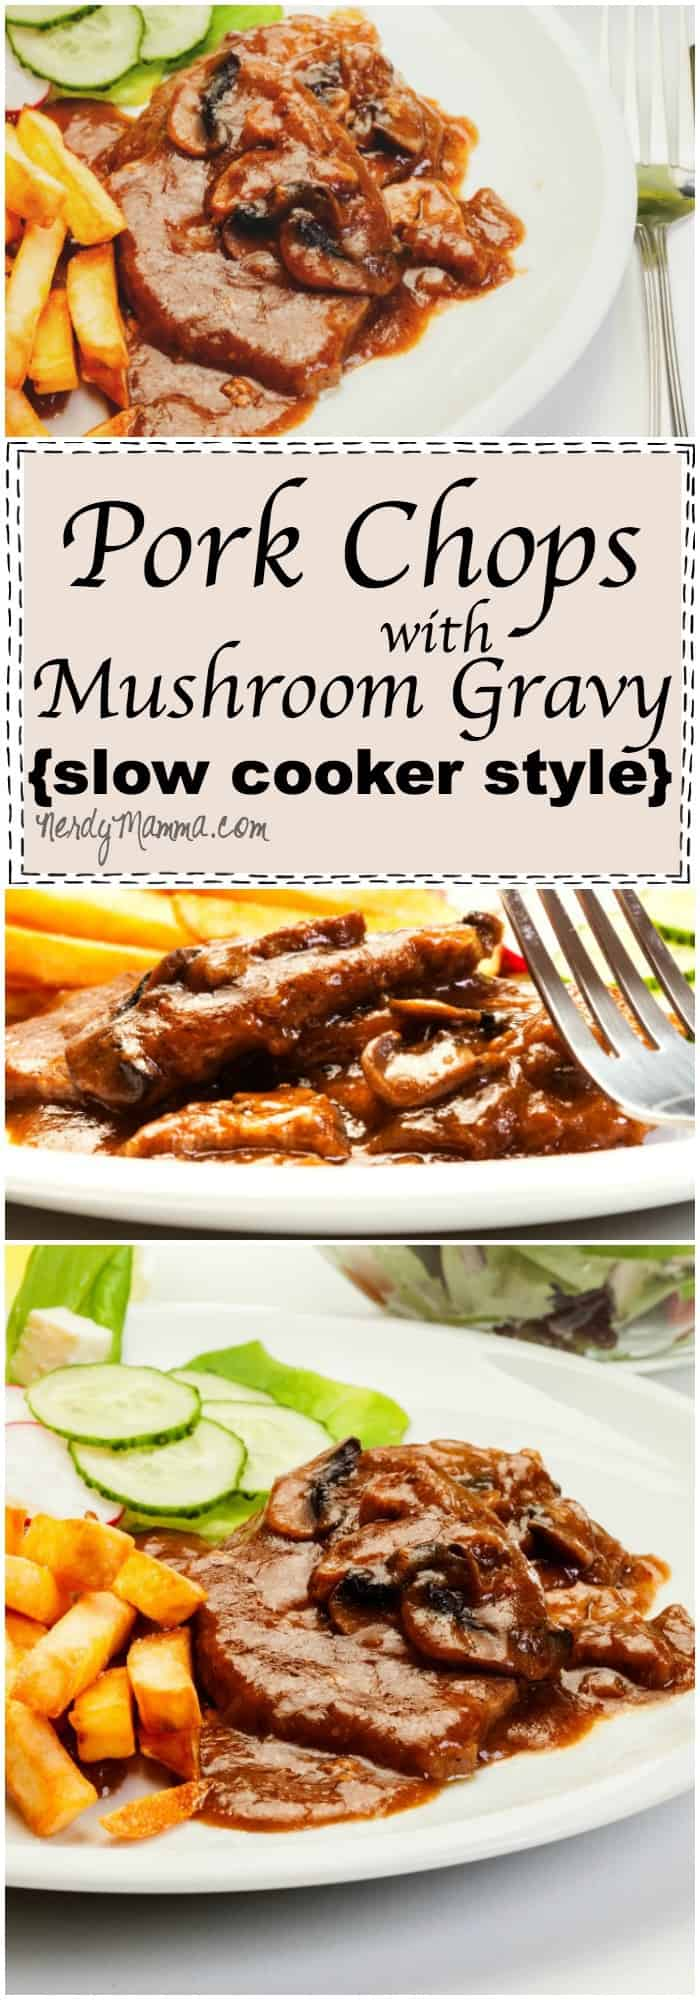 This recipe for Pork Chops with Mushroom Gravy is SO SIMPLE. I mean, I wish I'd thought of this before--it's so easy, I love it!